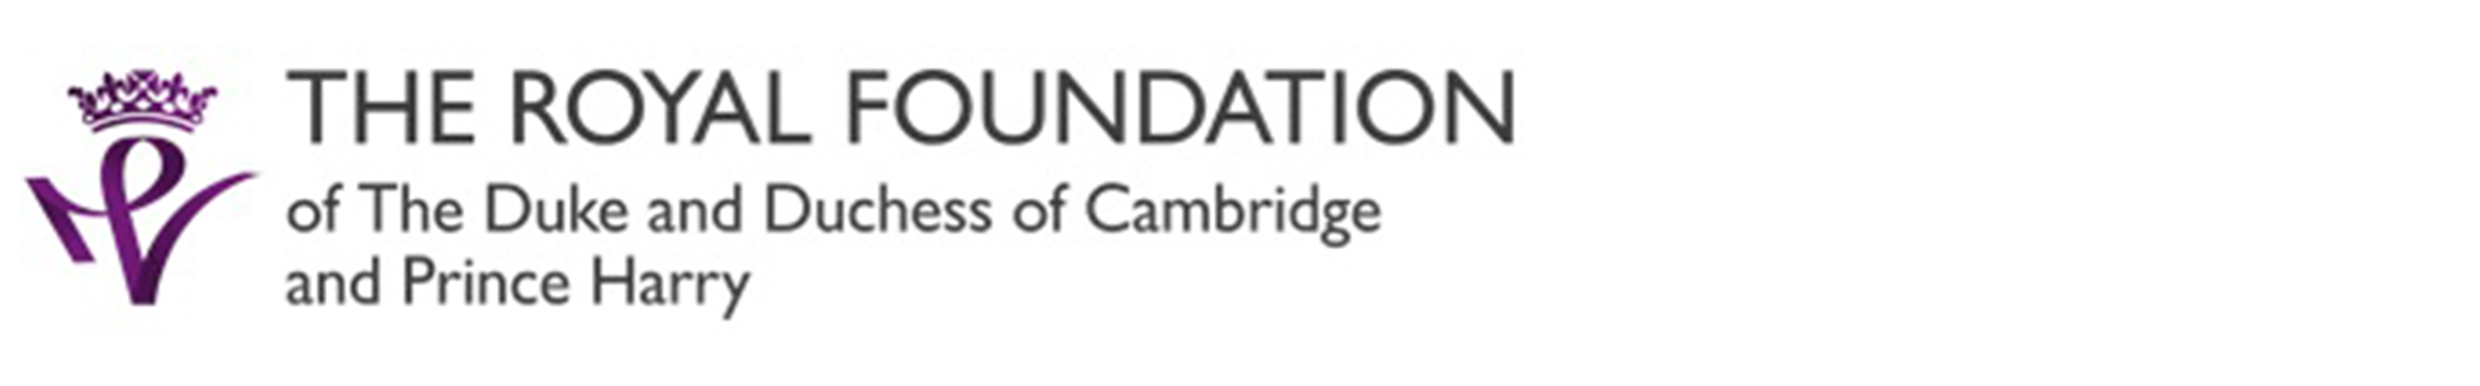 RoyalFoundationLogo